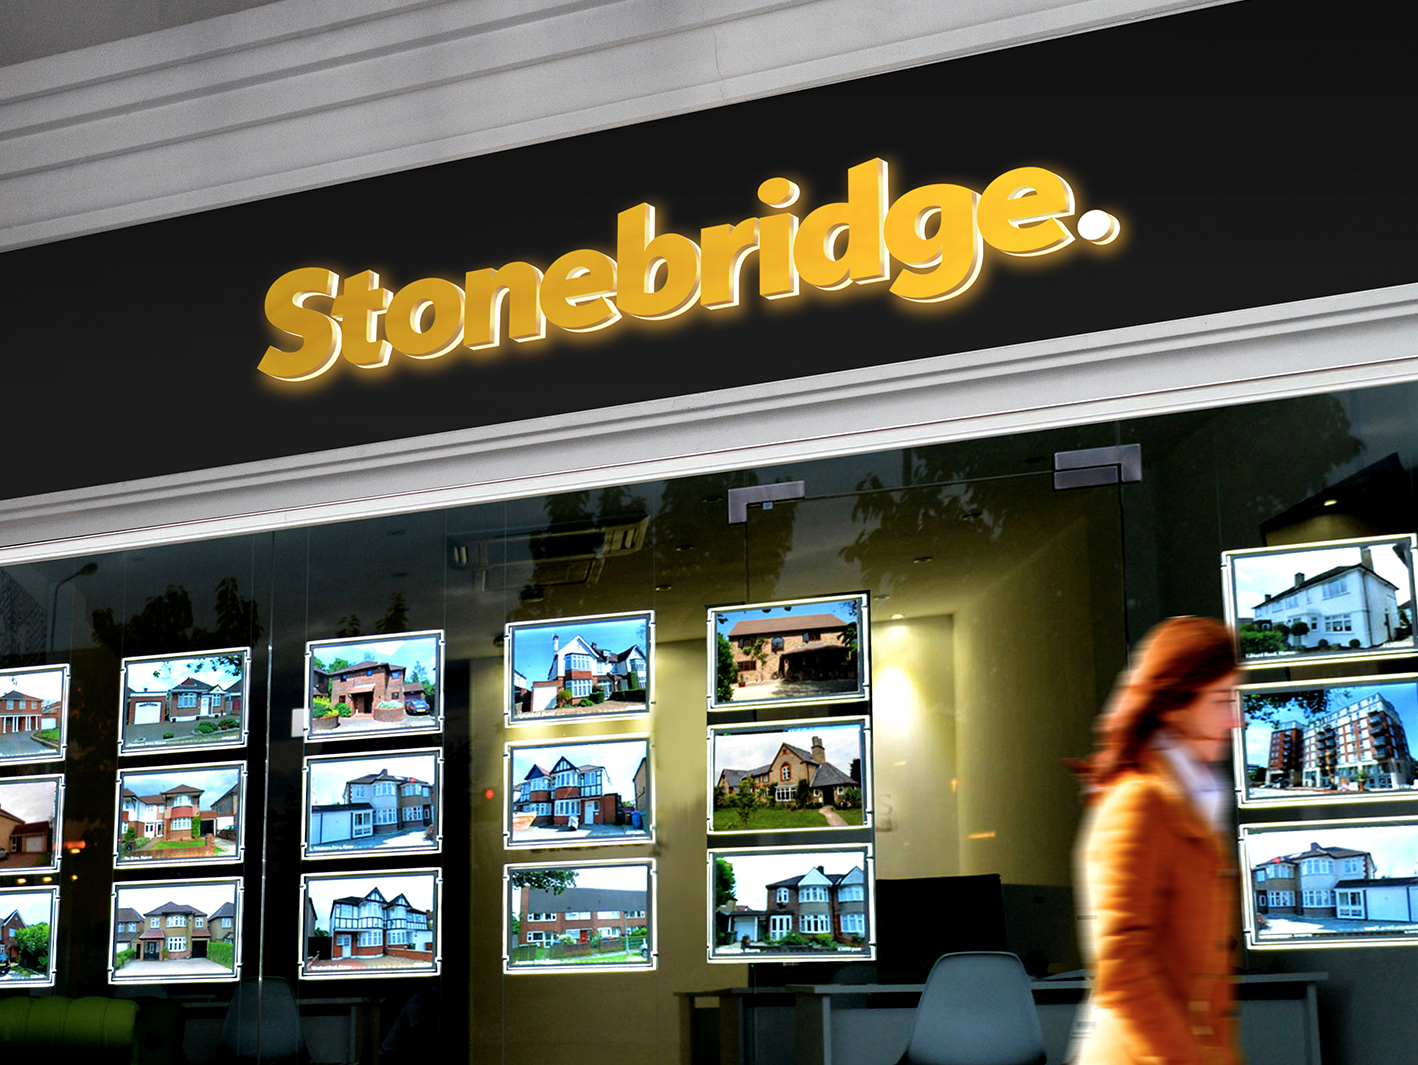 Stonebridge - When it comes to property sales, presentation is everything. Stonebridge a London estate agents, required a brand to match their reputation for service. The idea was to design a brand which has bold visual identity. Branding an estate agent needs to be dynamic and should look equally at home on a, brochure, stationery, website and vehicles. We developed a simple clean design using the angles of a pitched roof and a business colour palette to convey trustworthiness.